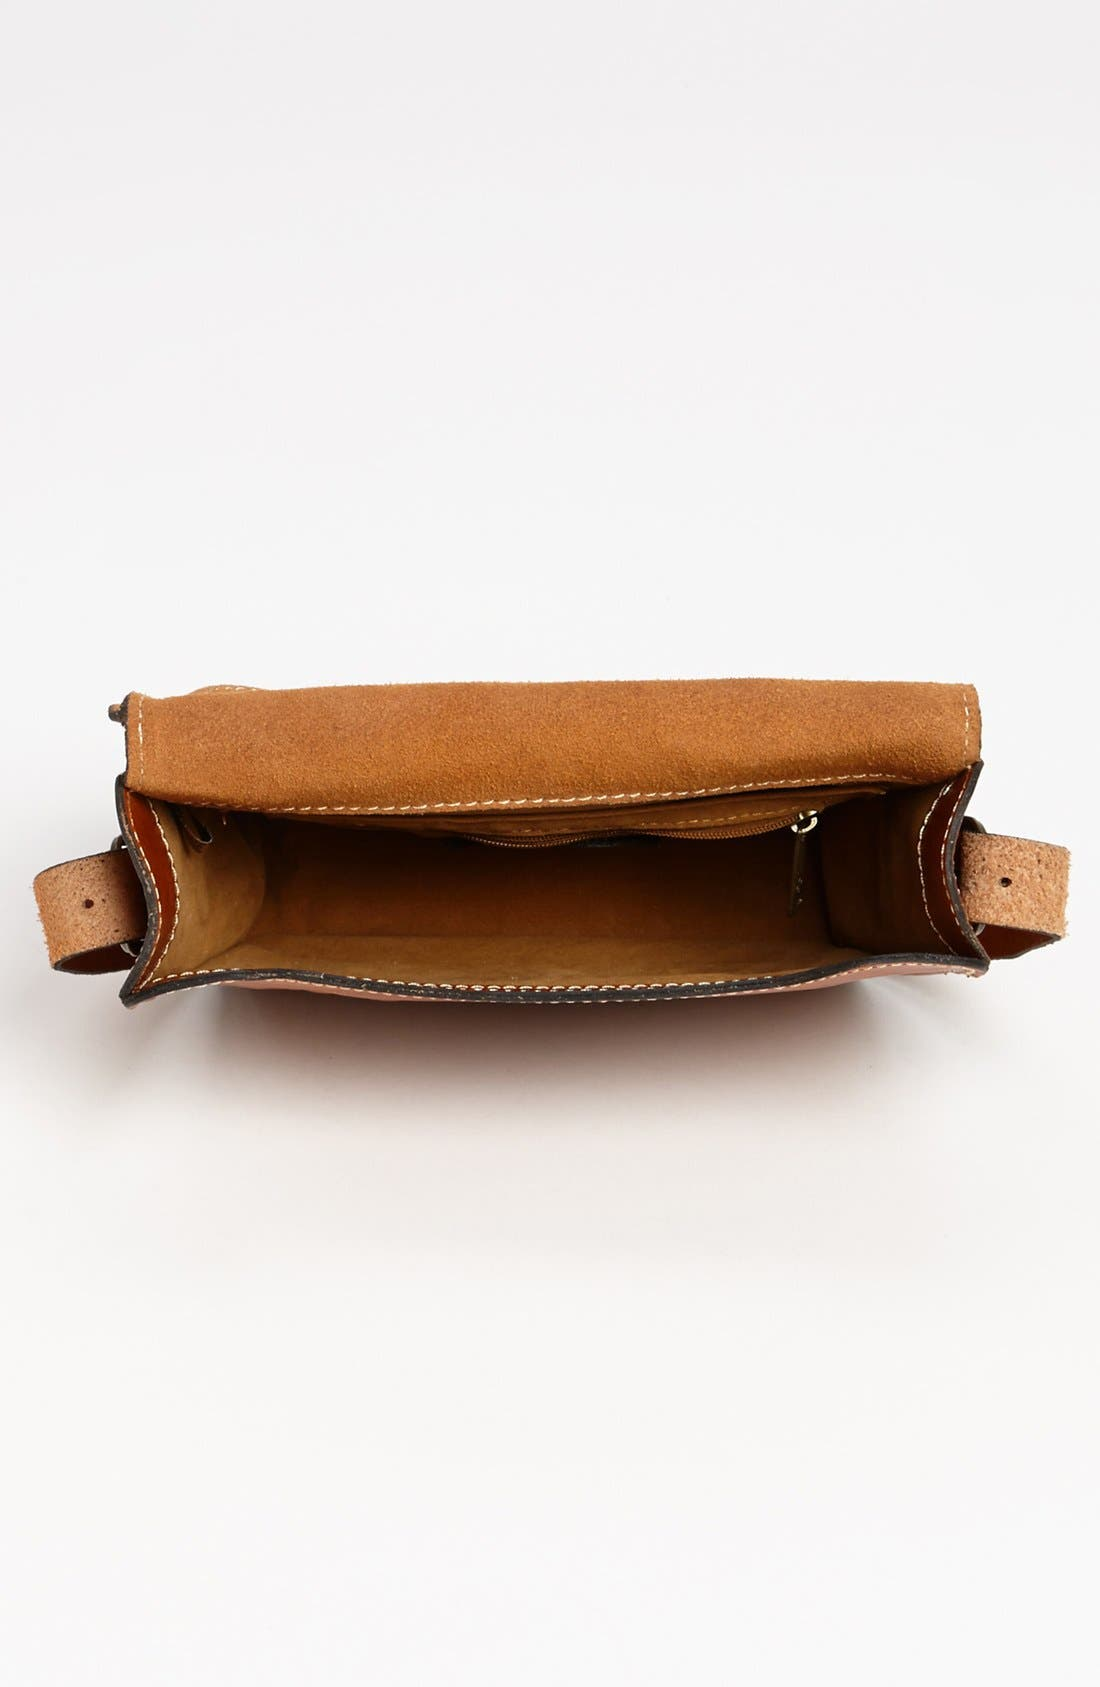 'Marciano' Leather Crossbody Bag,                             Alternate thumbnail 2, color,                             200